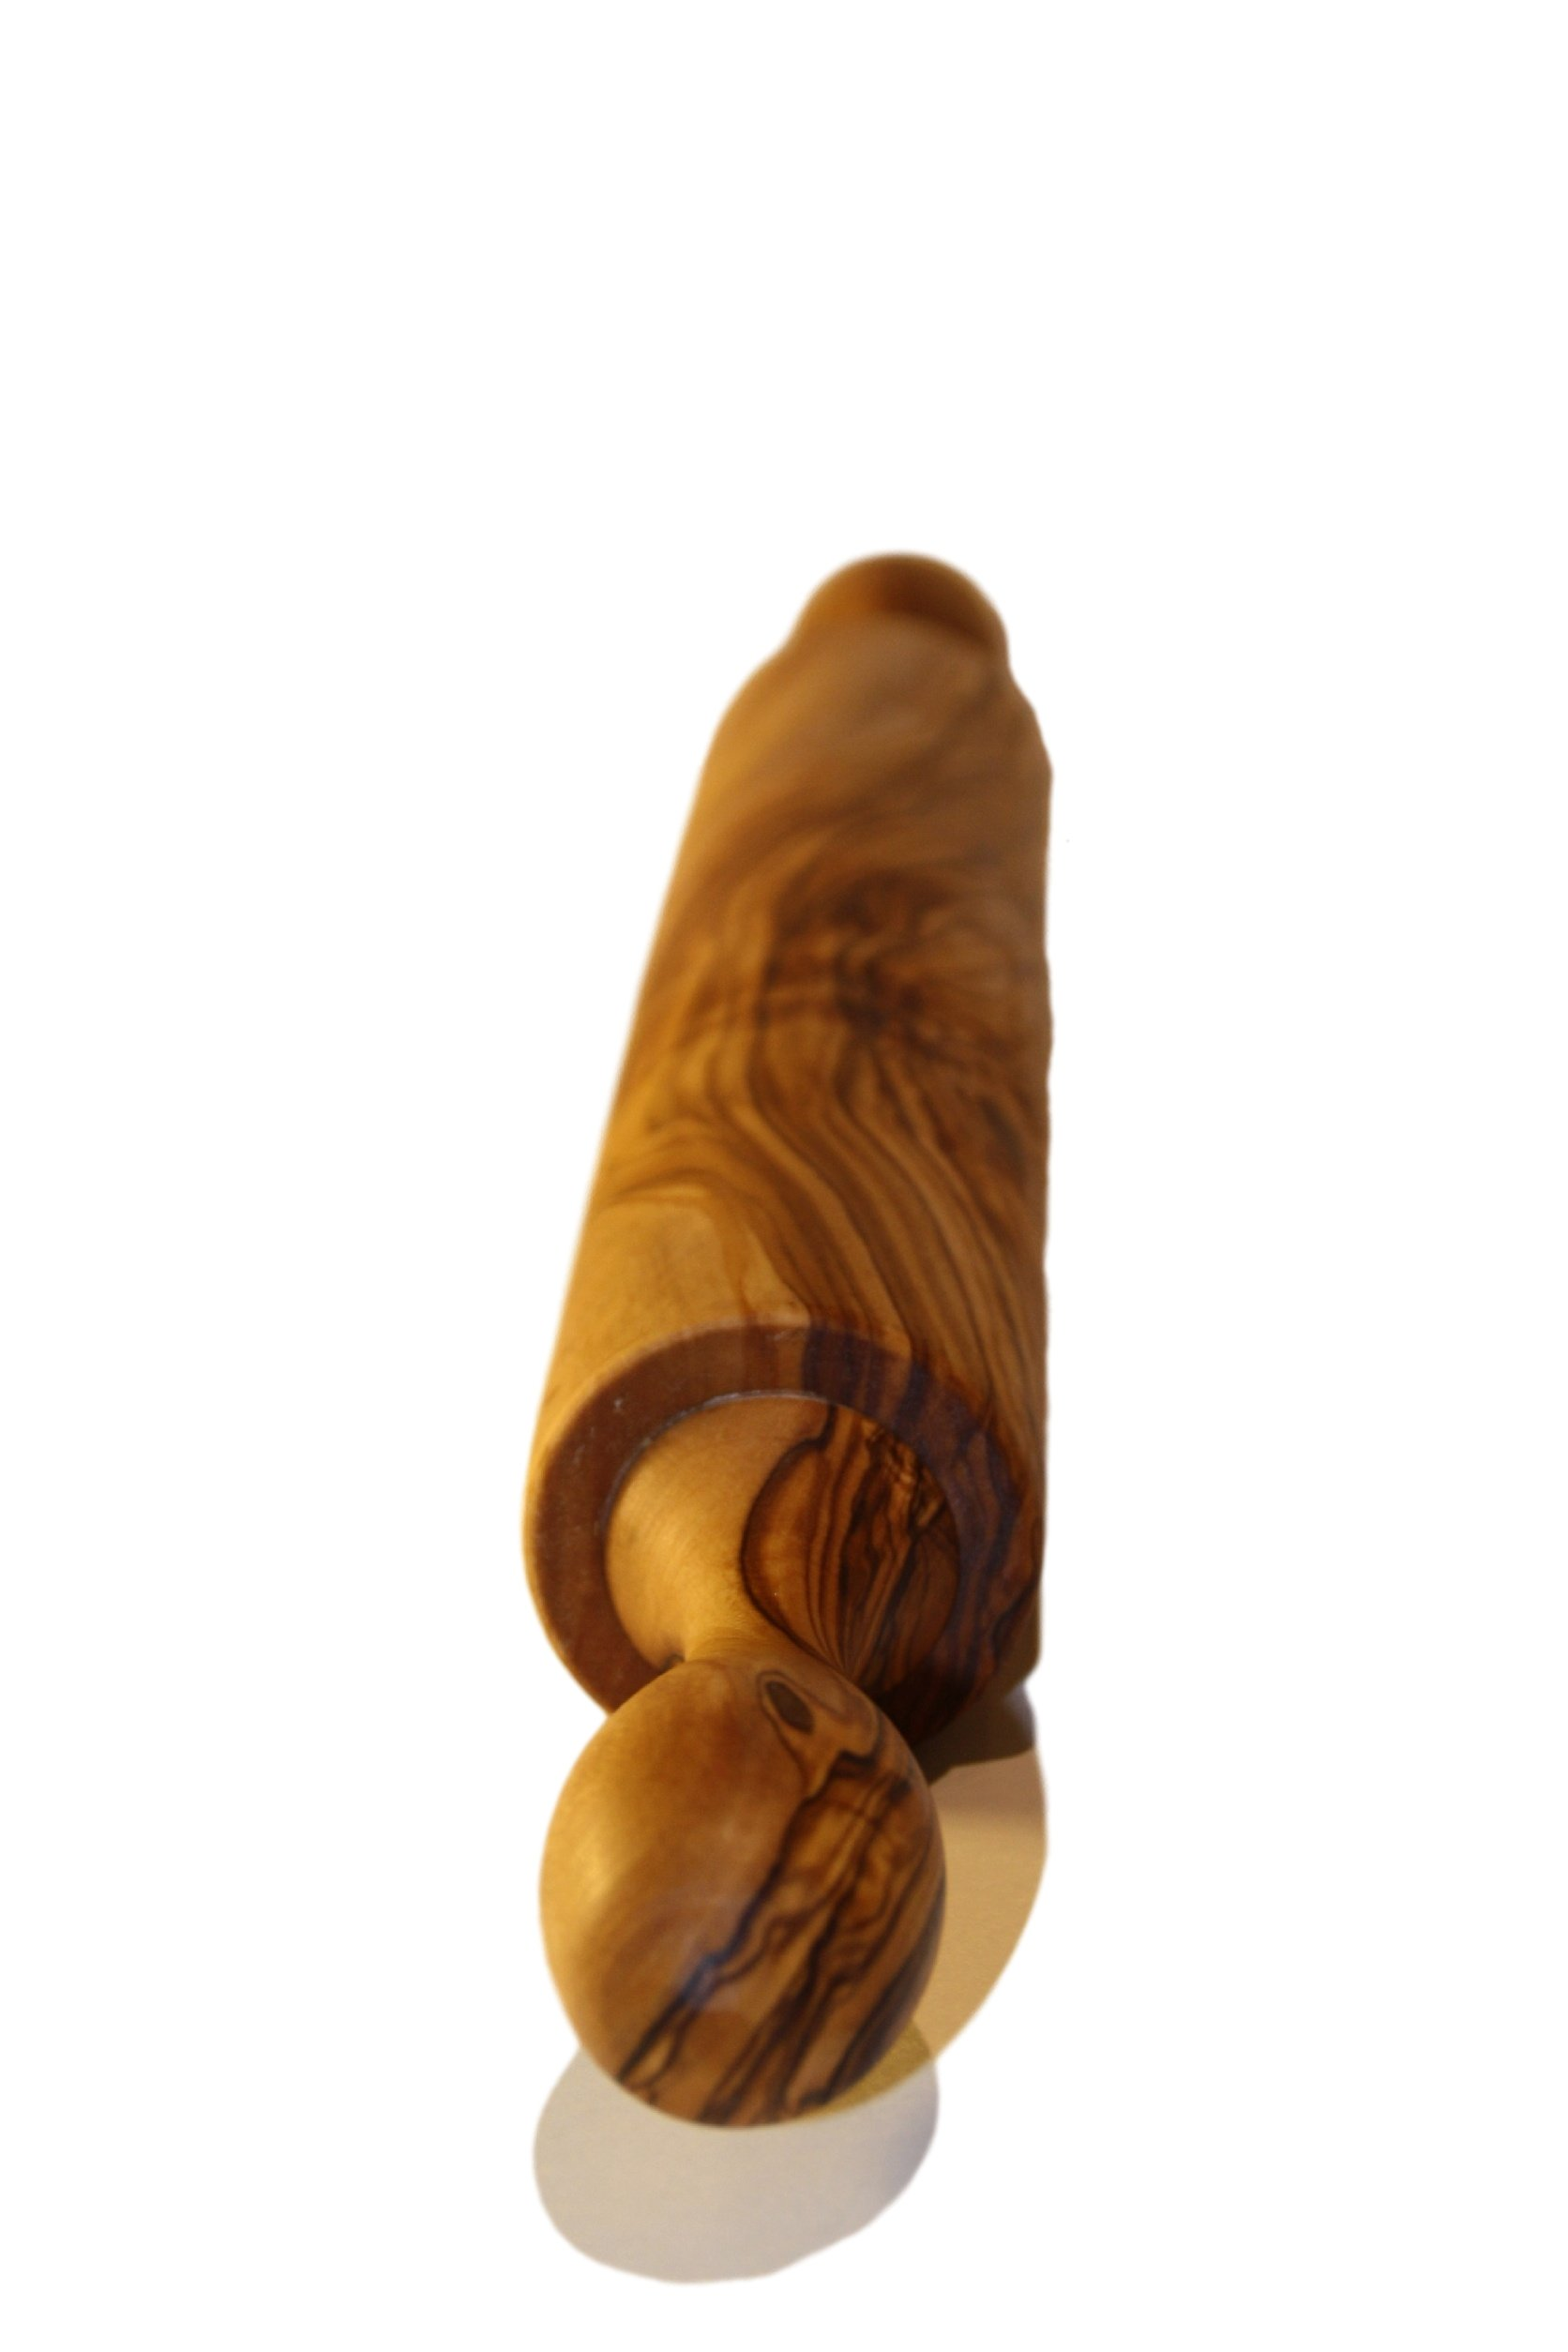 Cucina Priolo - Olive Wood Rolling Pin, Unique Natural Handcrafted, Essential Cooking and Baking Tool by Cucina Priolo (Image #4)